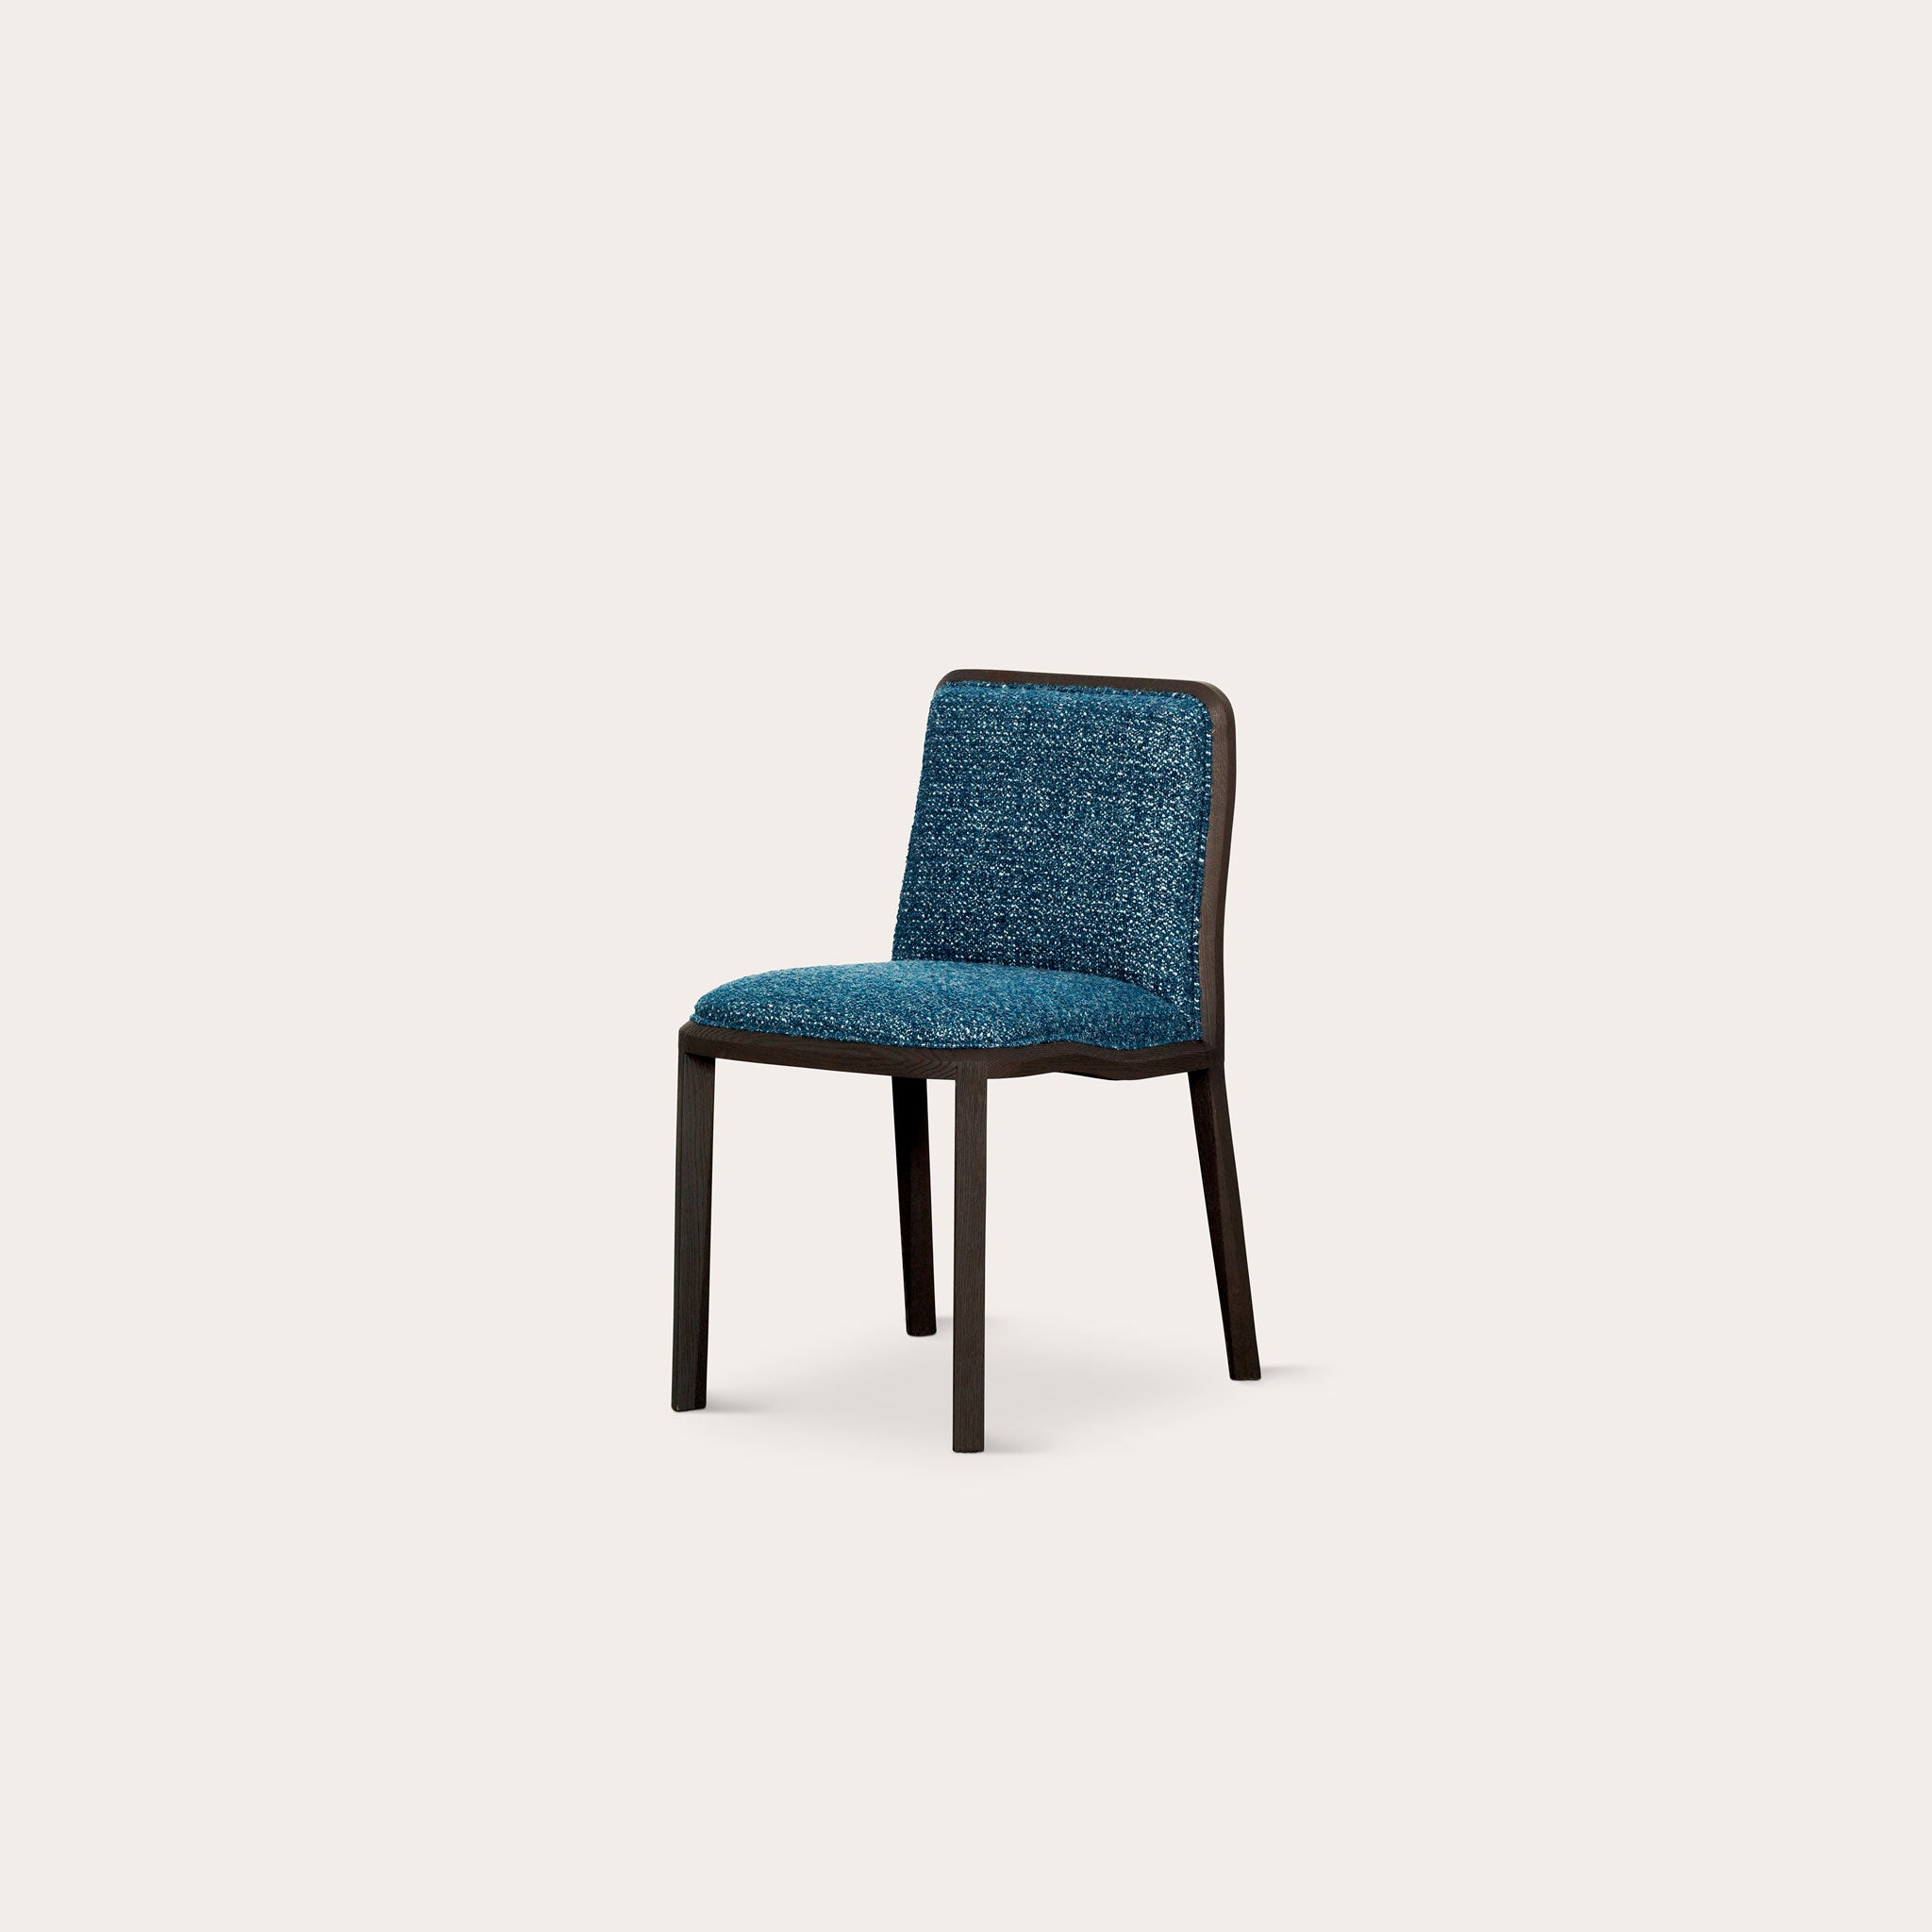 BAK Chair Seating Christophe Delcourt Designer Furniture Sku: 008-240-10237